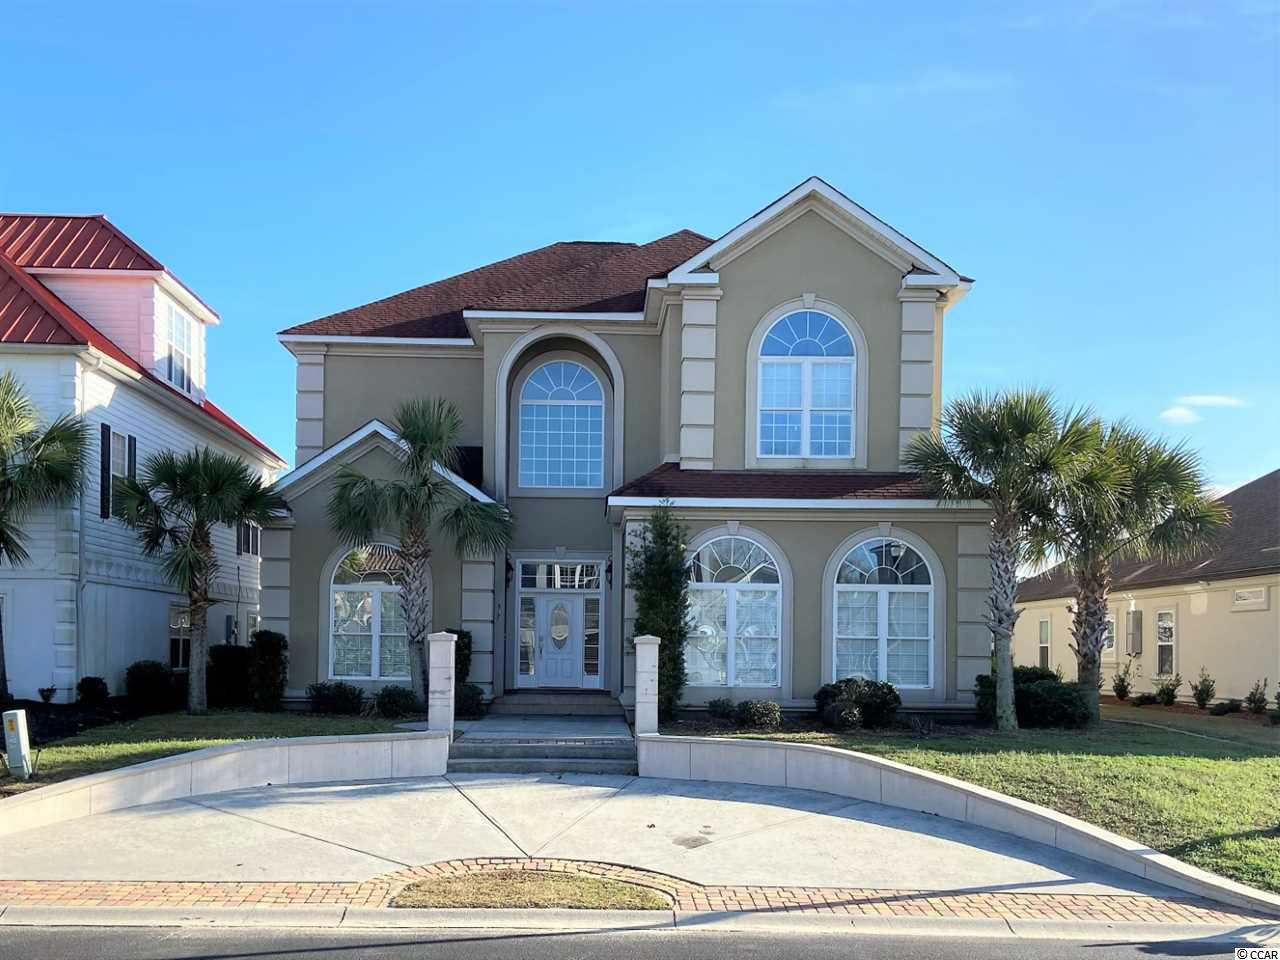 837 Bluffview Dr., Myrtle Beach, South Carolina